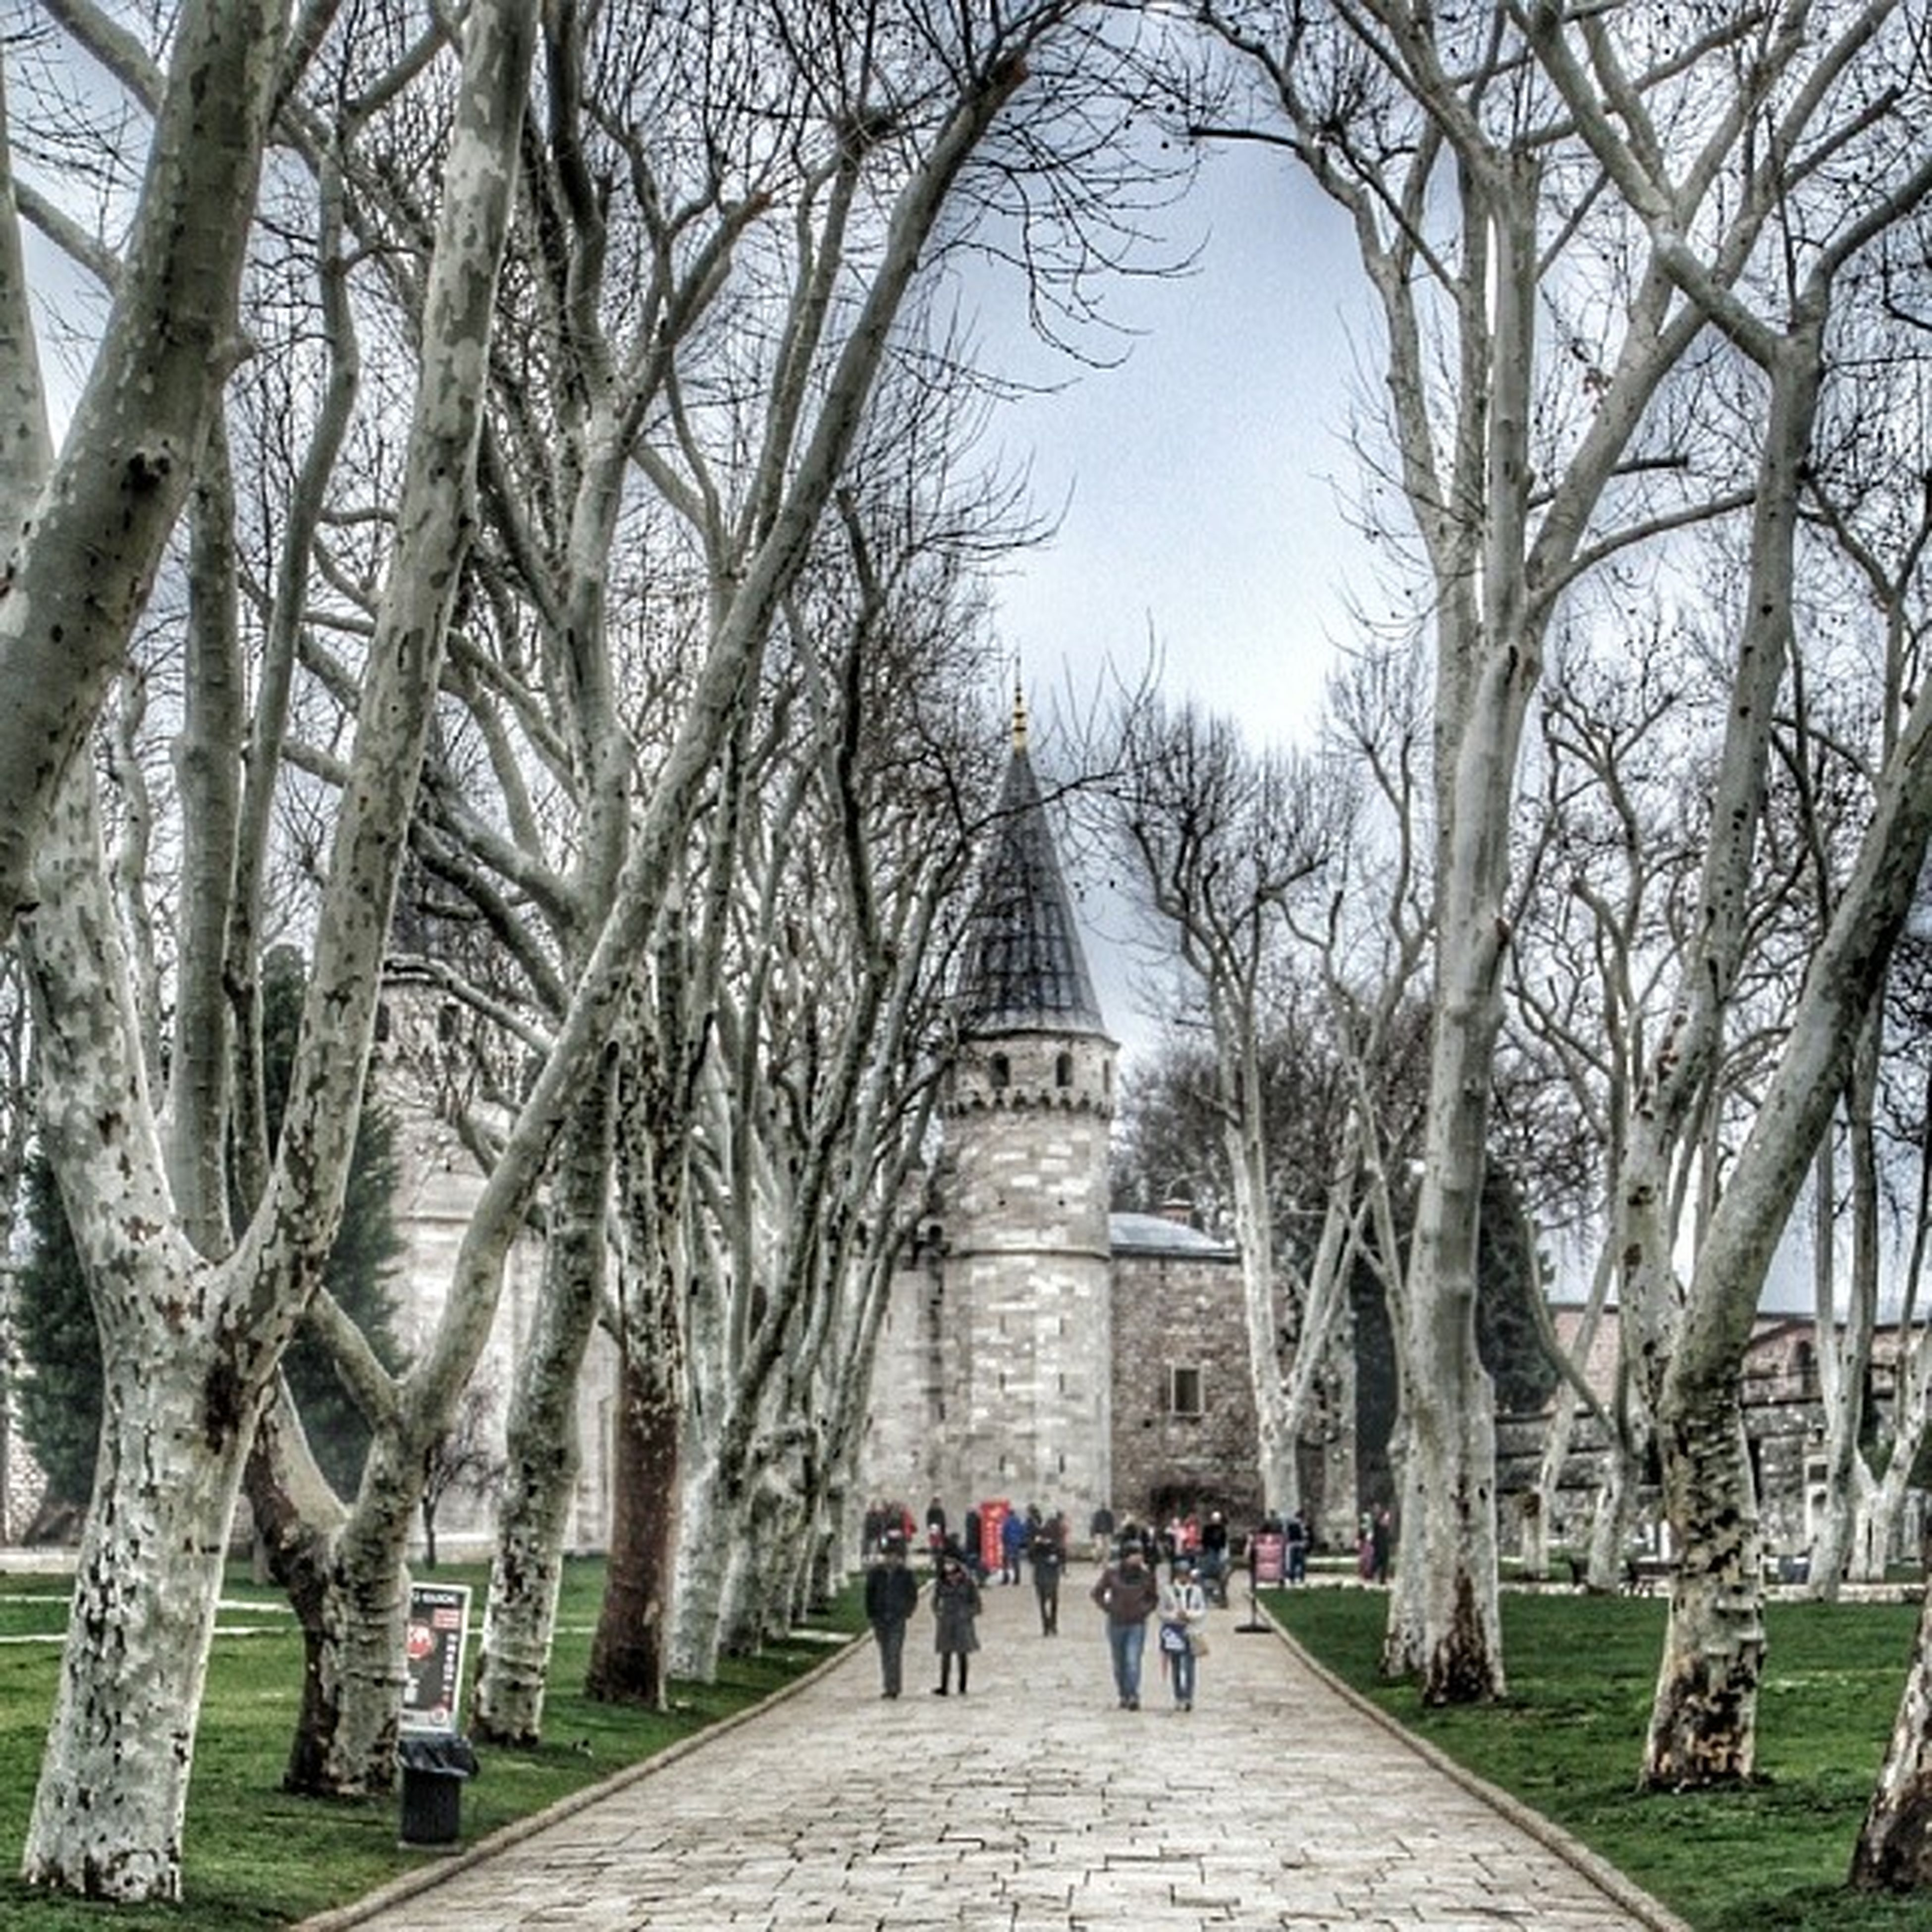 architecture, built structure, building exterior, person, tree, large group of people, men, lifestyles, tourist, the way forward, walking, tourism, leisure activity, famous place, travel destinations, travel, religion, place of worship, history